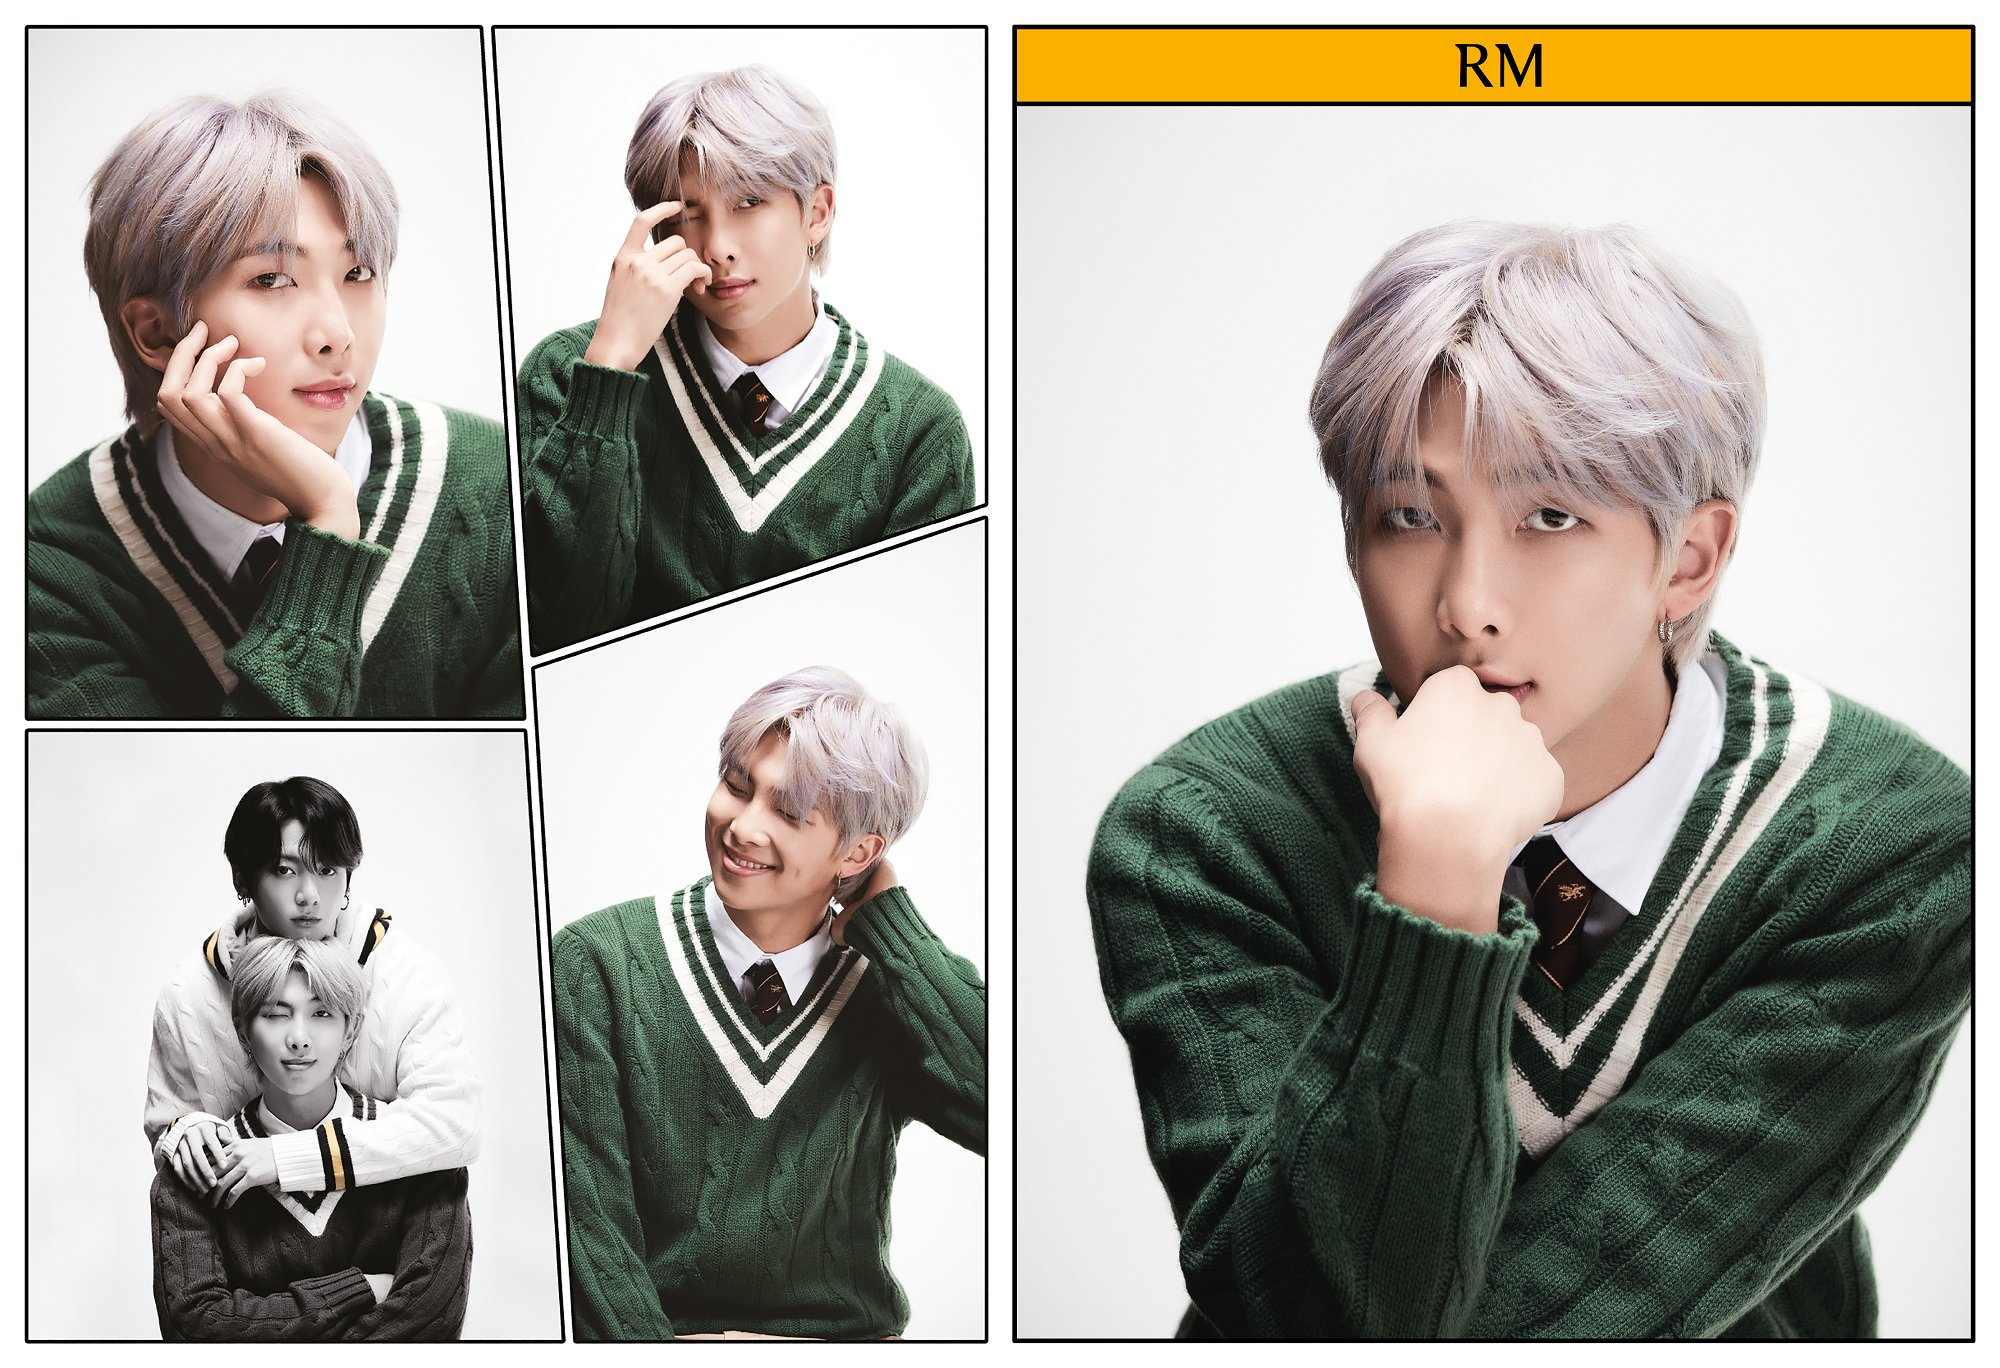 RM BTS Rilis Konsep Foto Keempat untuk Album Map of The Soul: 7 - Definition of Happiness and Youth © Big Hit Entertainment